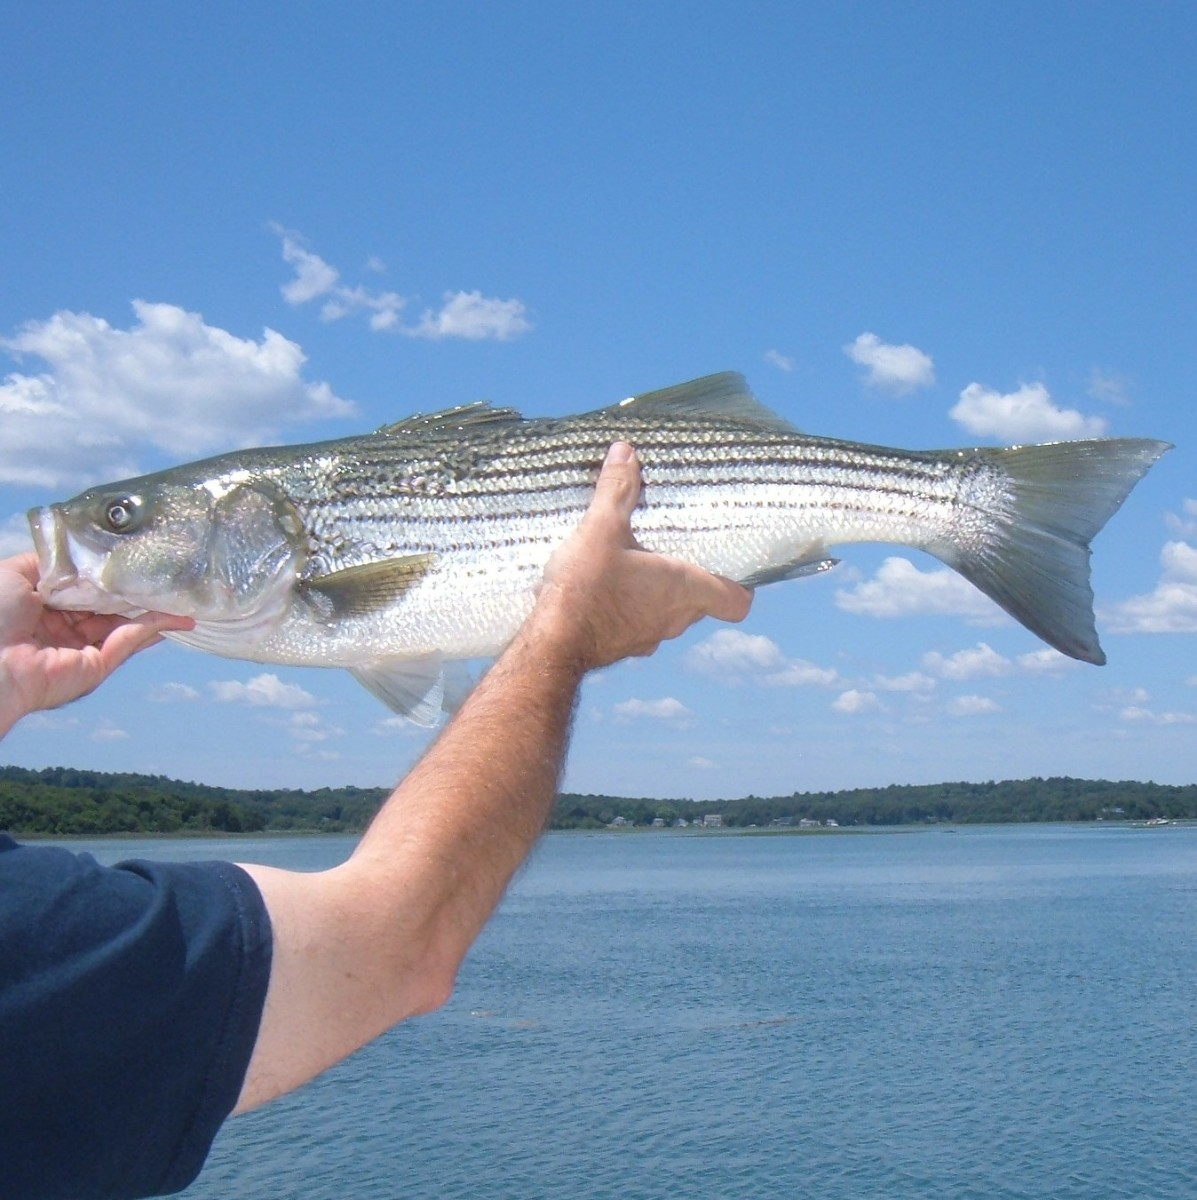 Another South River schoolie striper